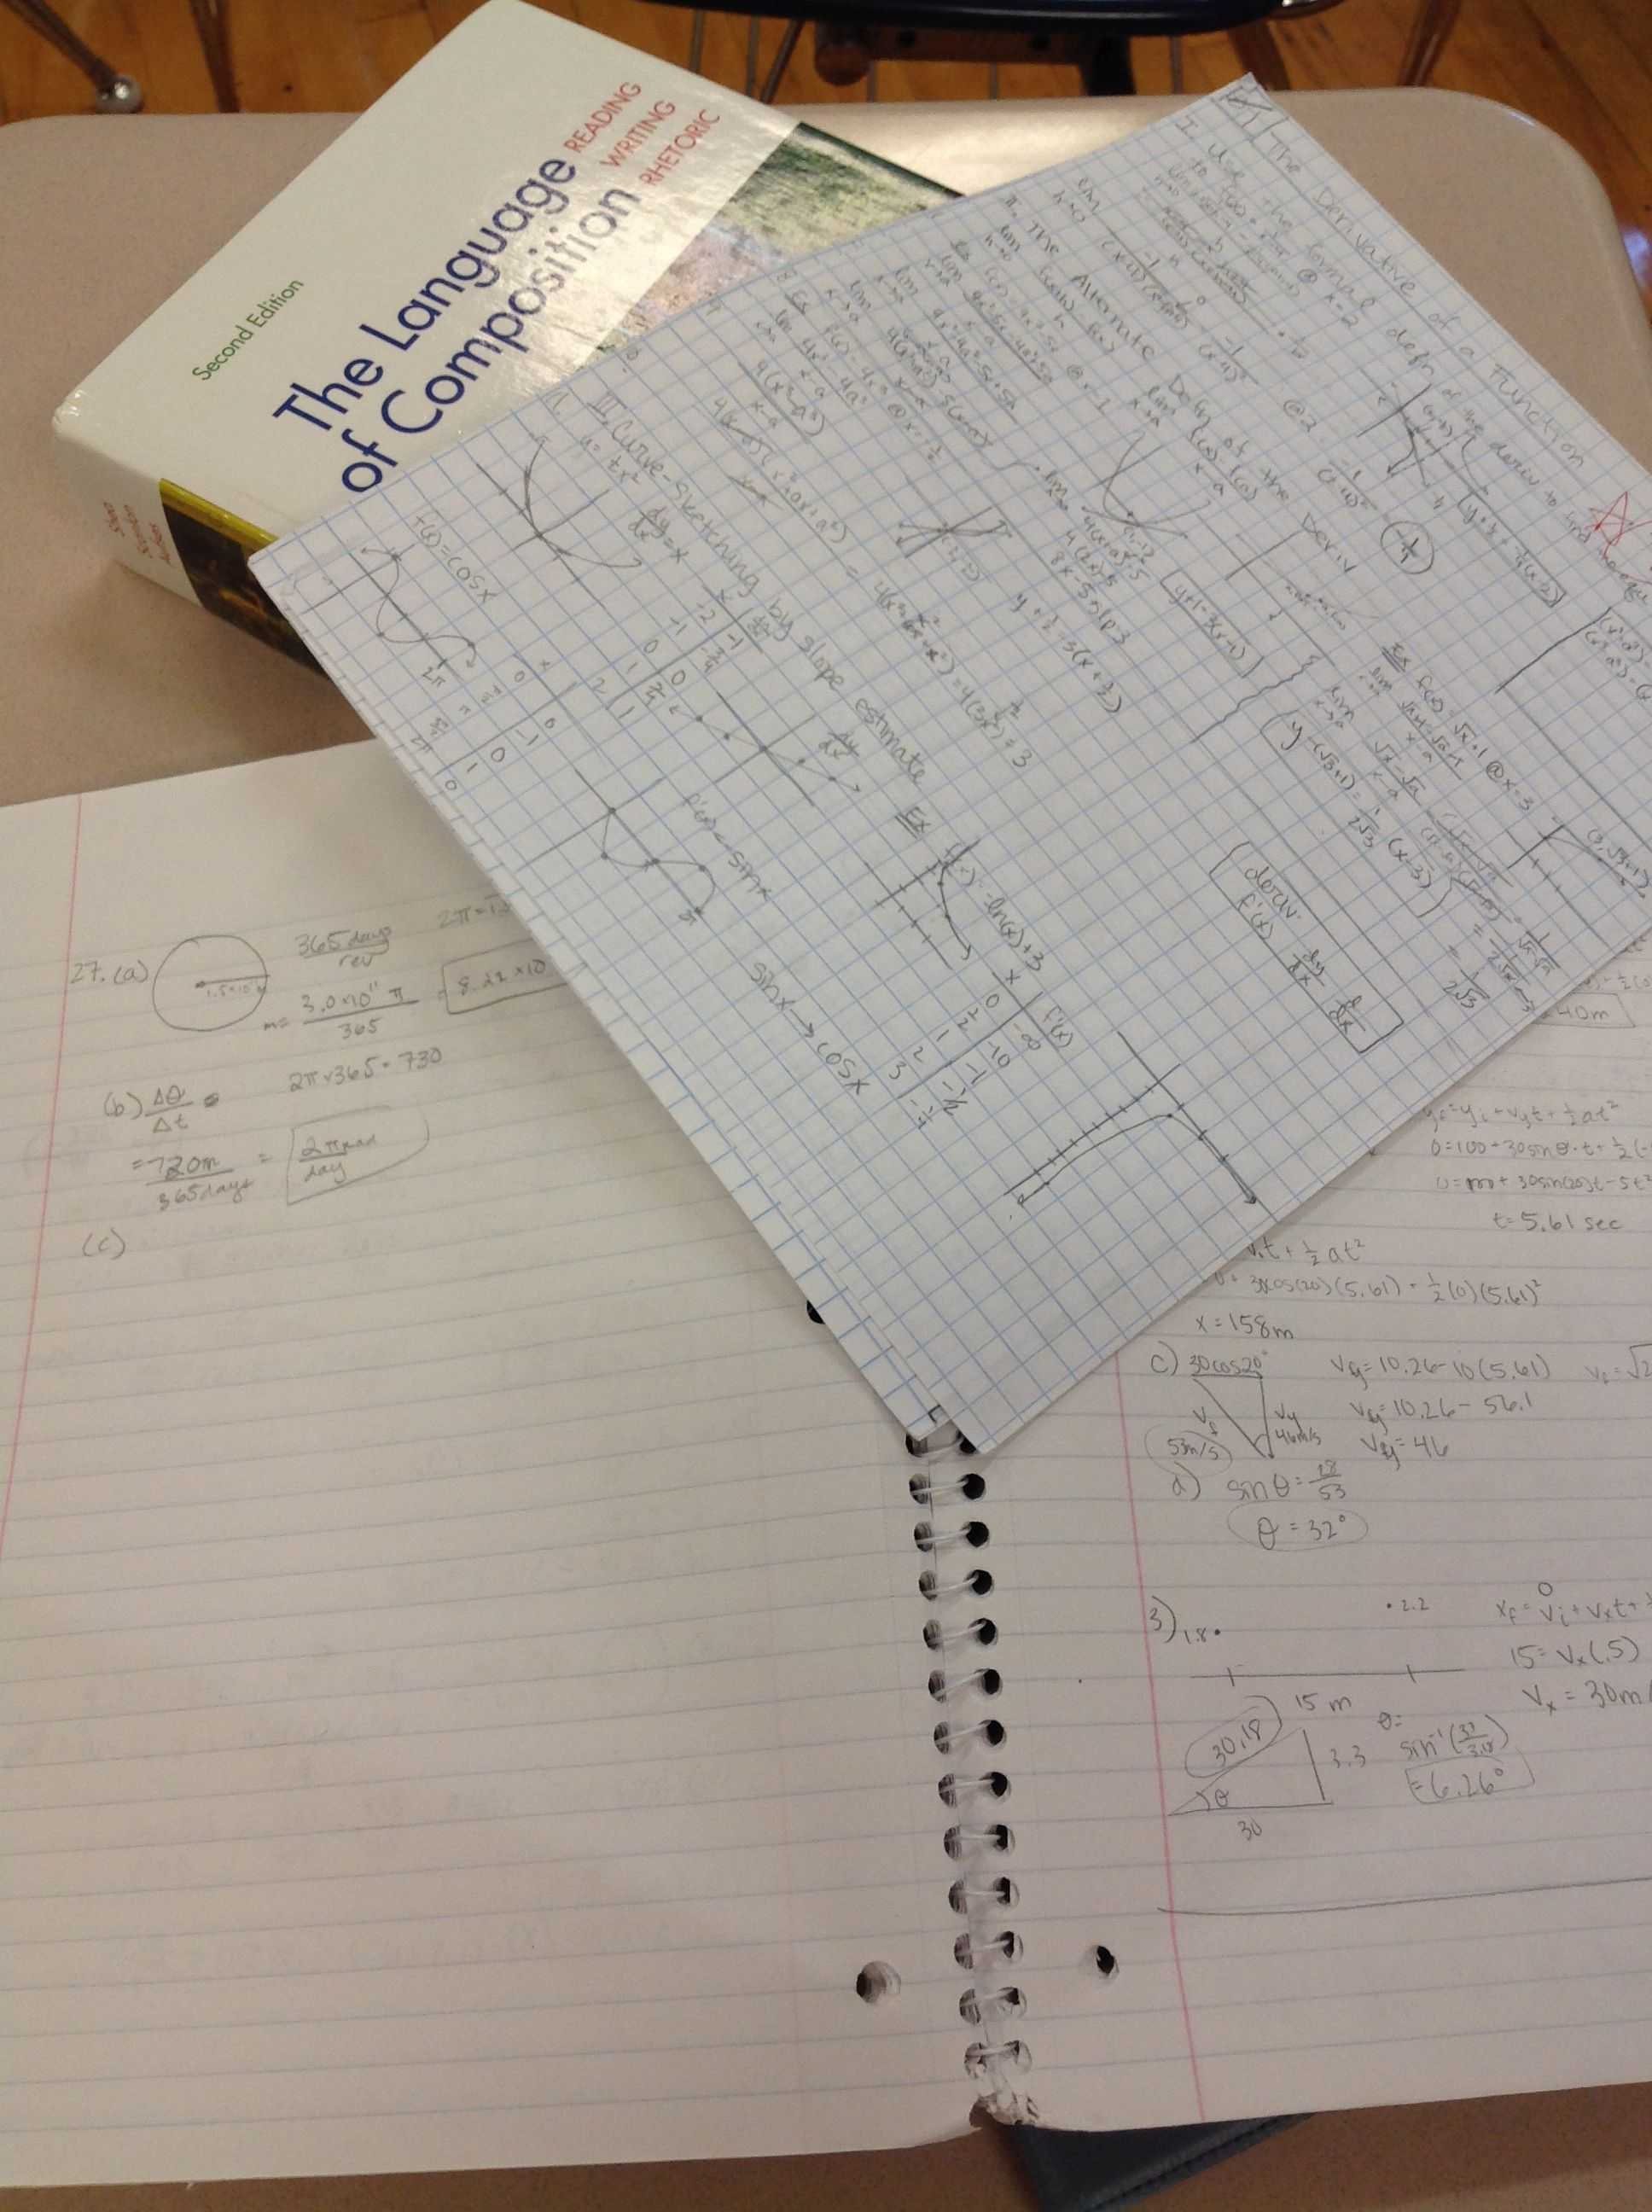 Bellarmine students receive homework from several subjects each day. Photo by Rachael So